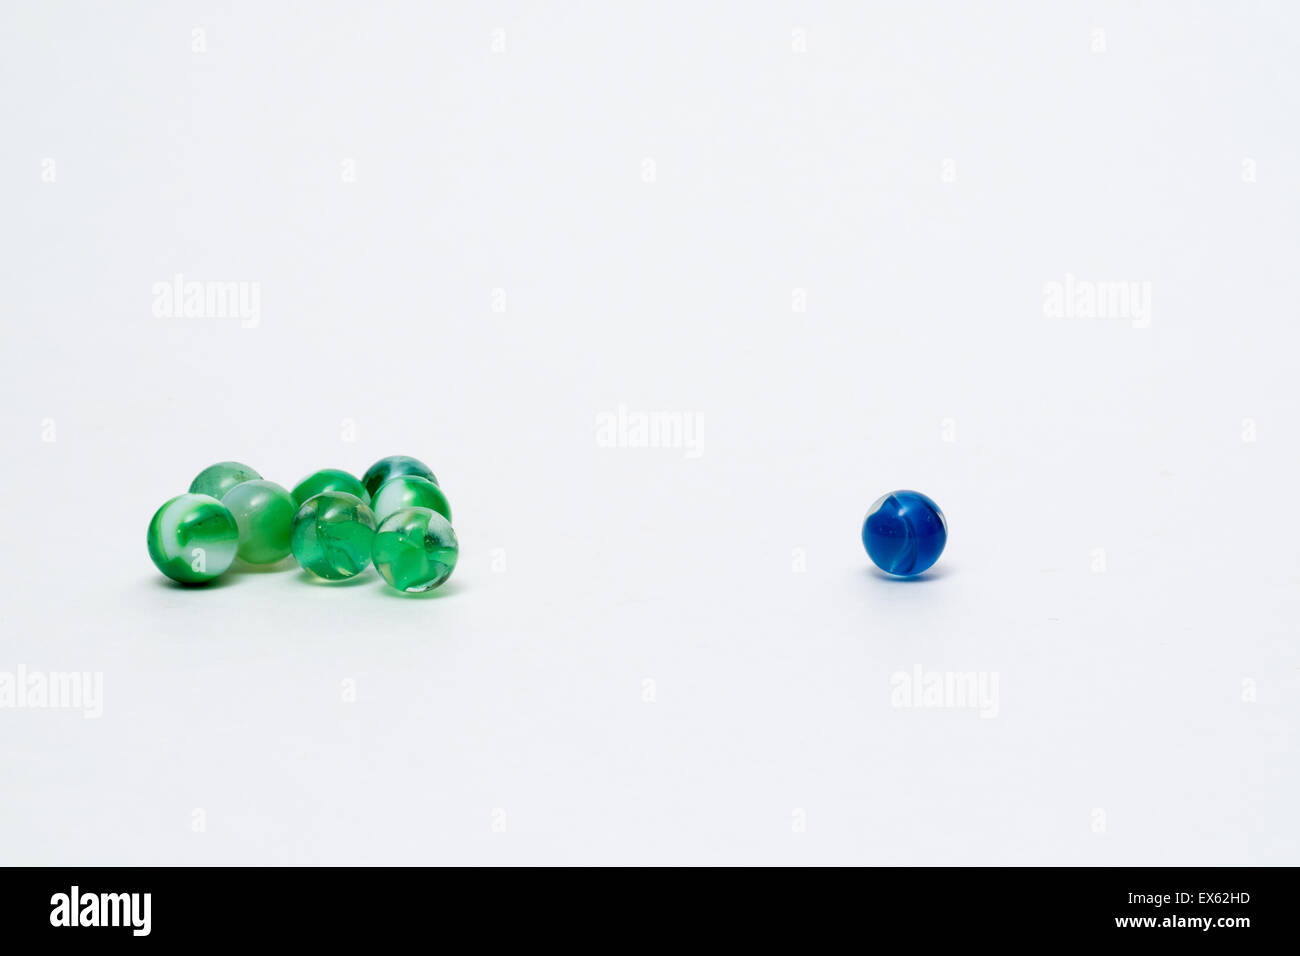 Group of Green Marbles Single Blue Marble, Blue Marble Alone, Singled Out Stock Photo